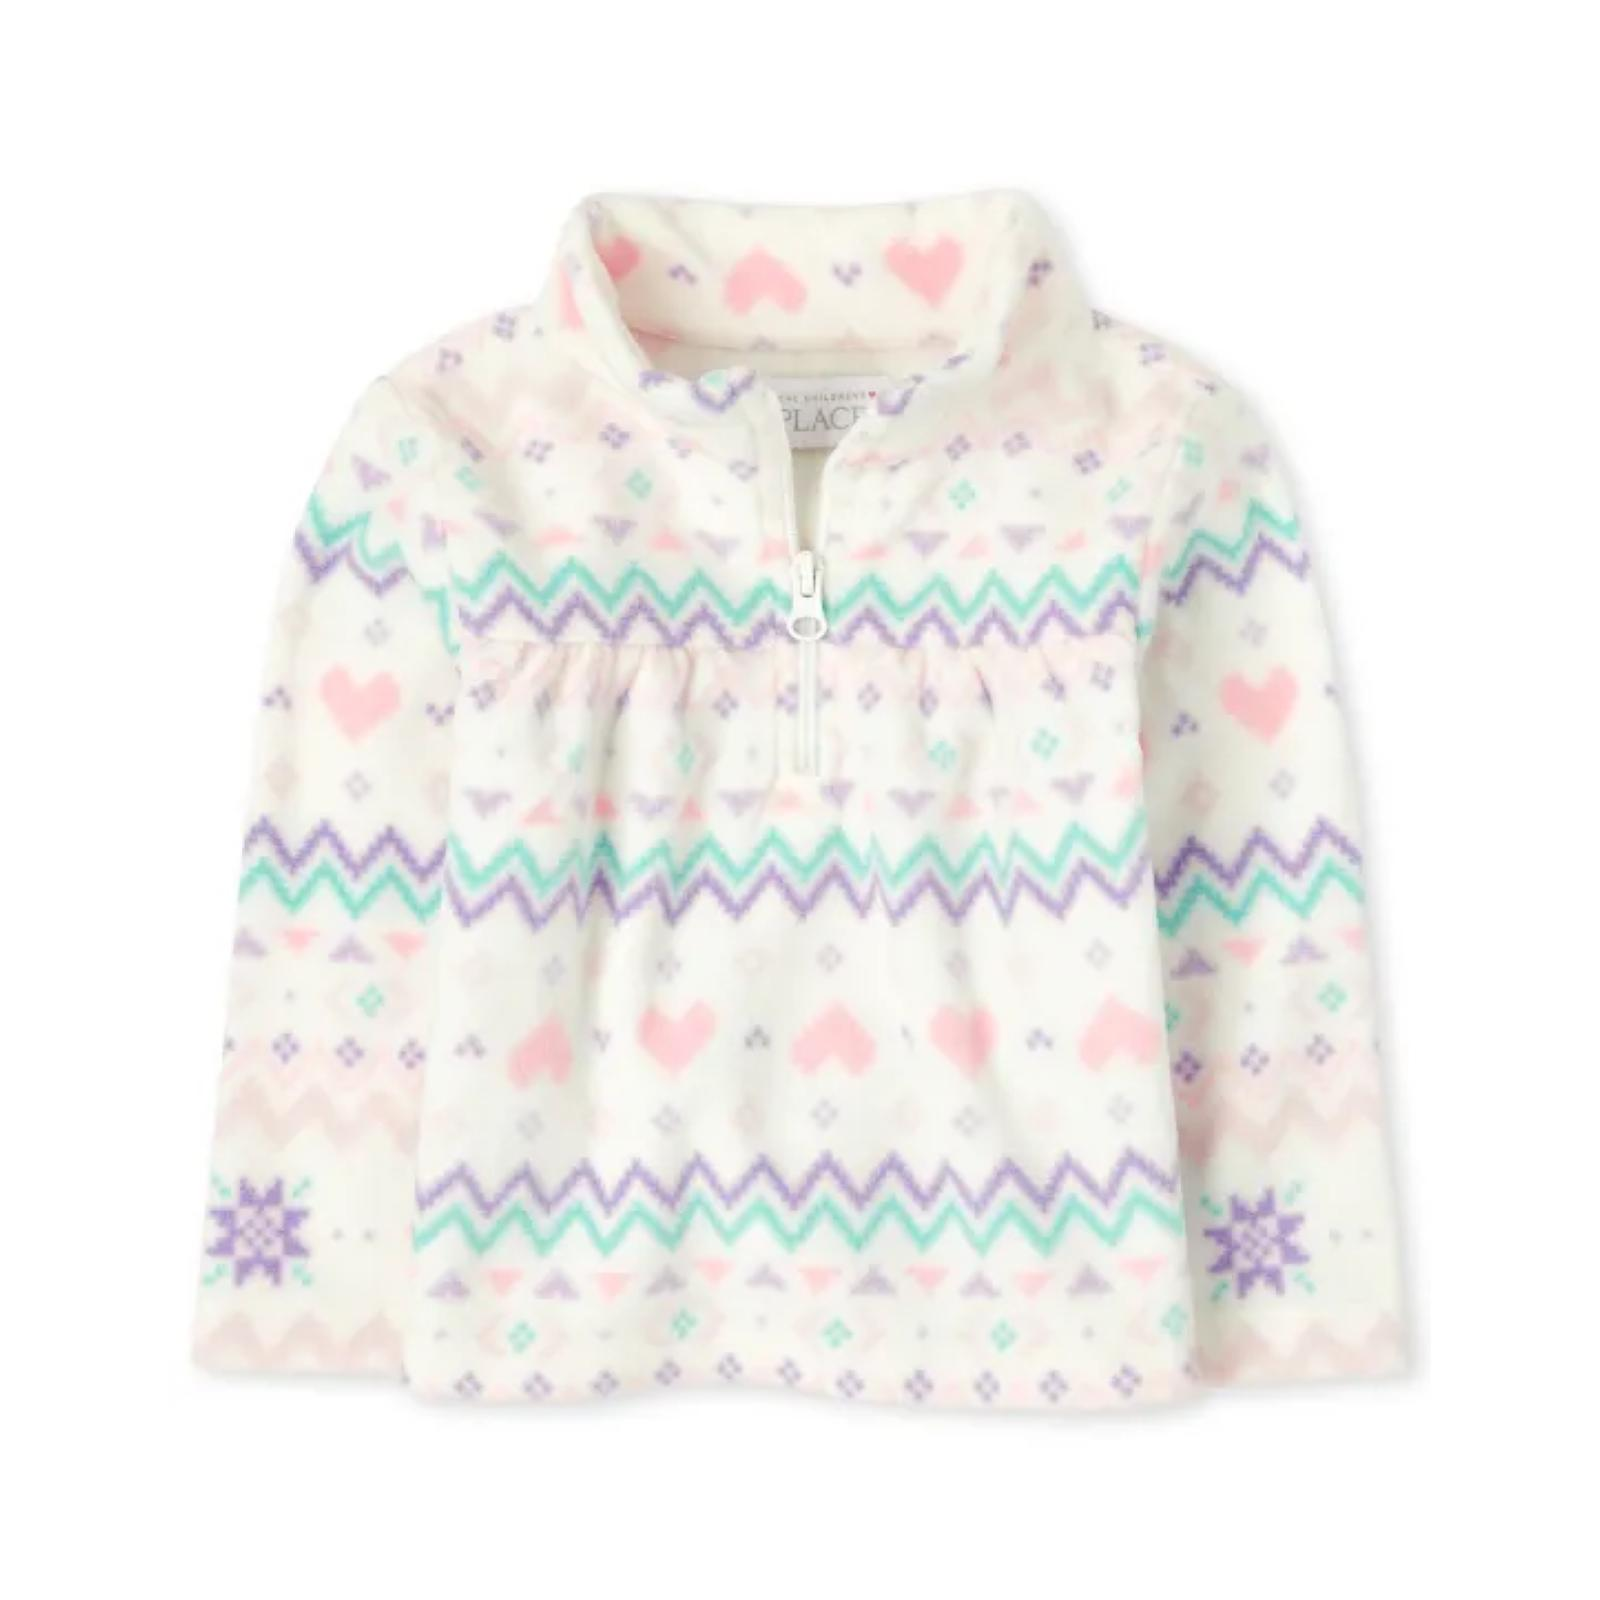 Sweater fleece listras rosa e lilas | 4 anos